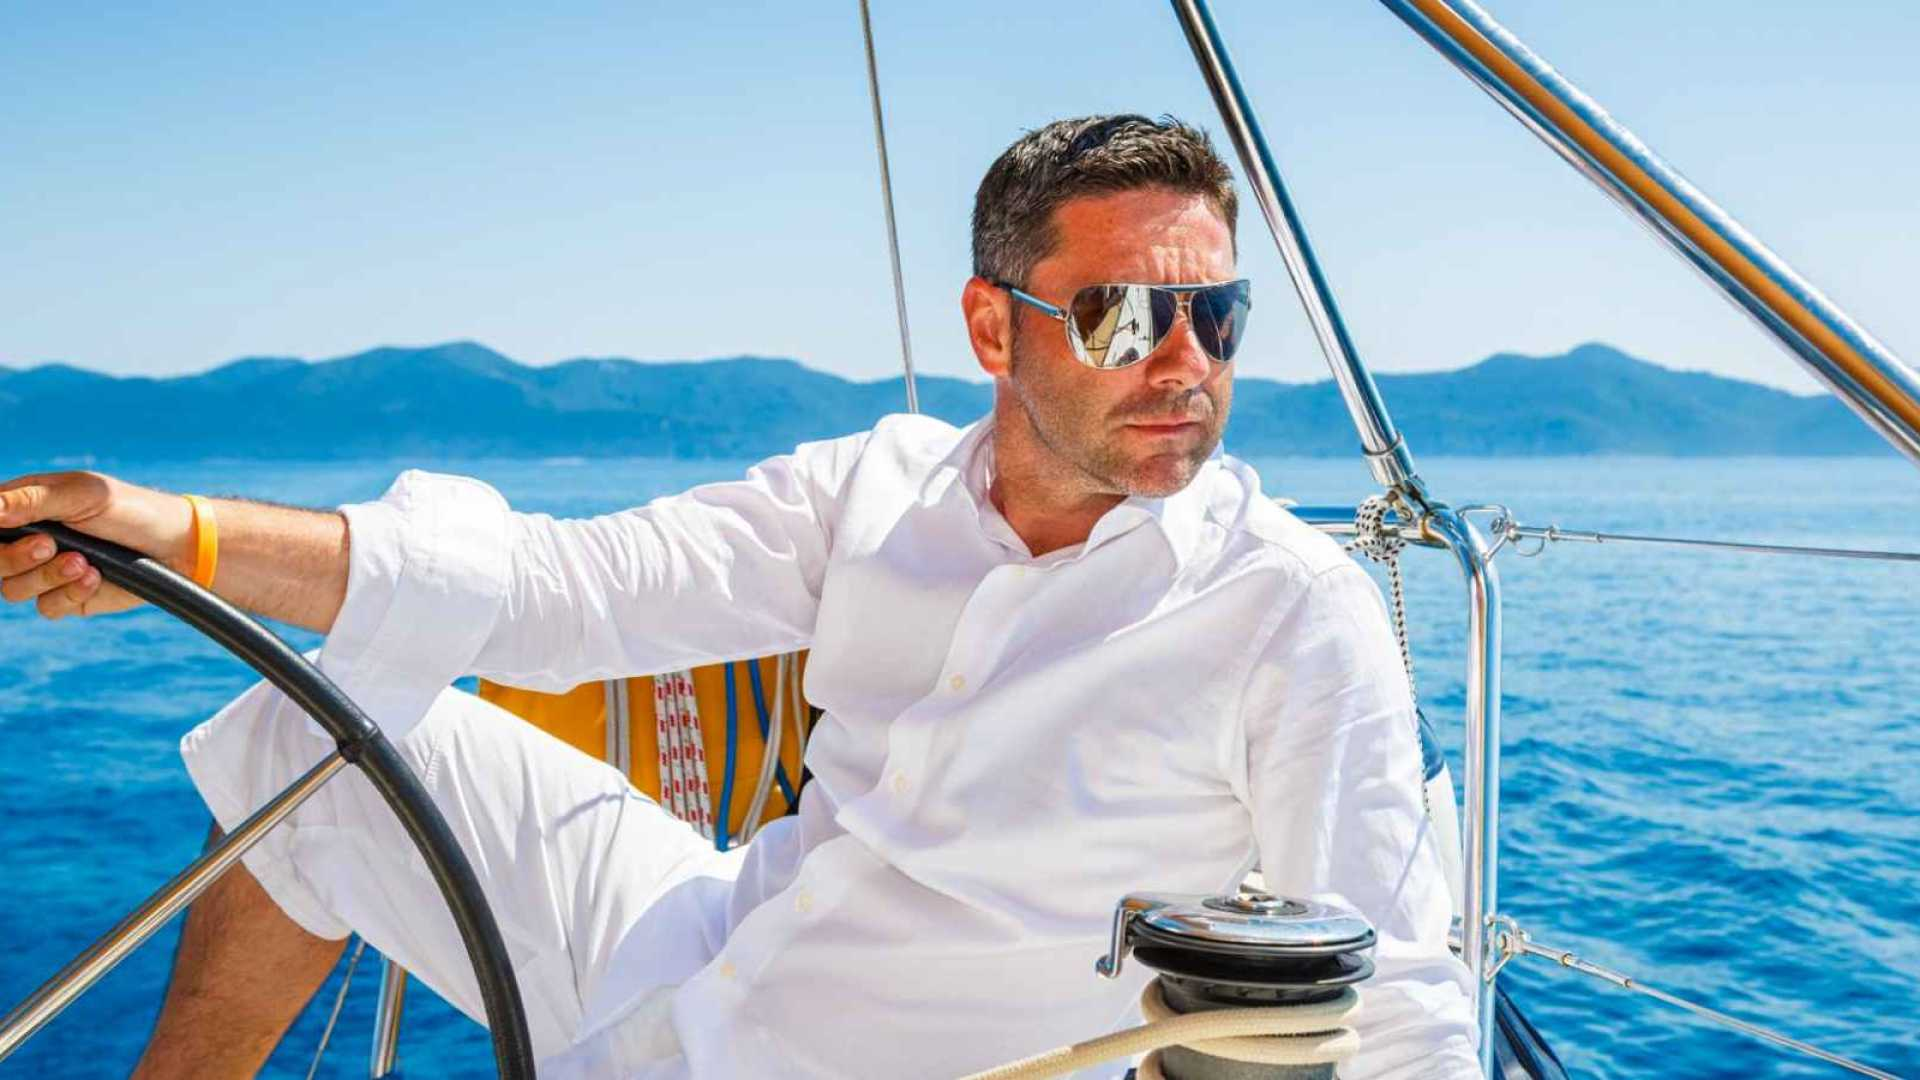 Want to Be Ridiculously Wealthy? 5Simple Strategies of Self-Made Billionaires